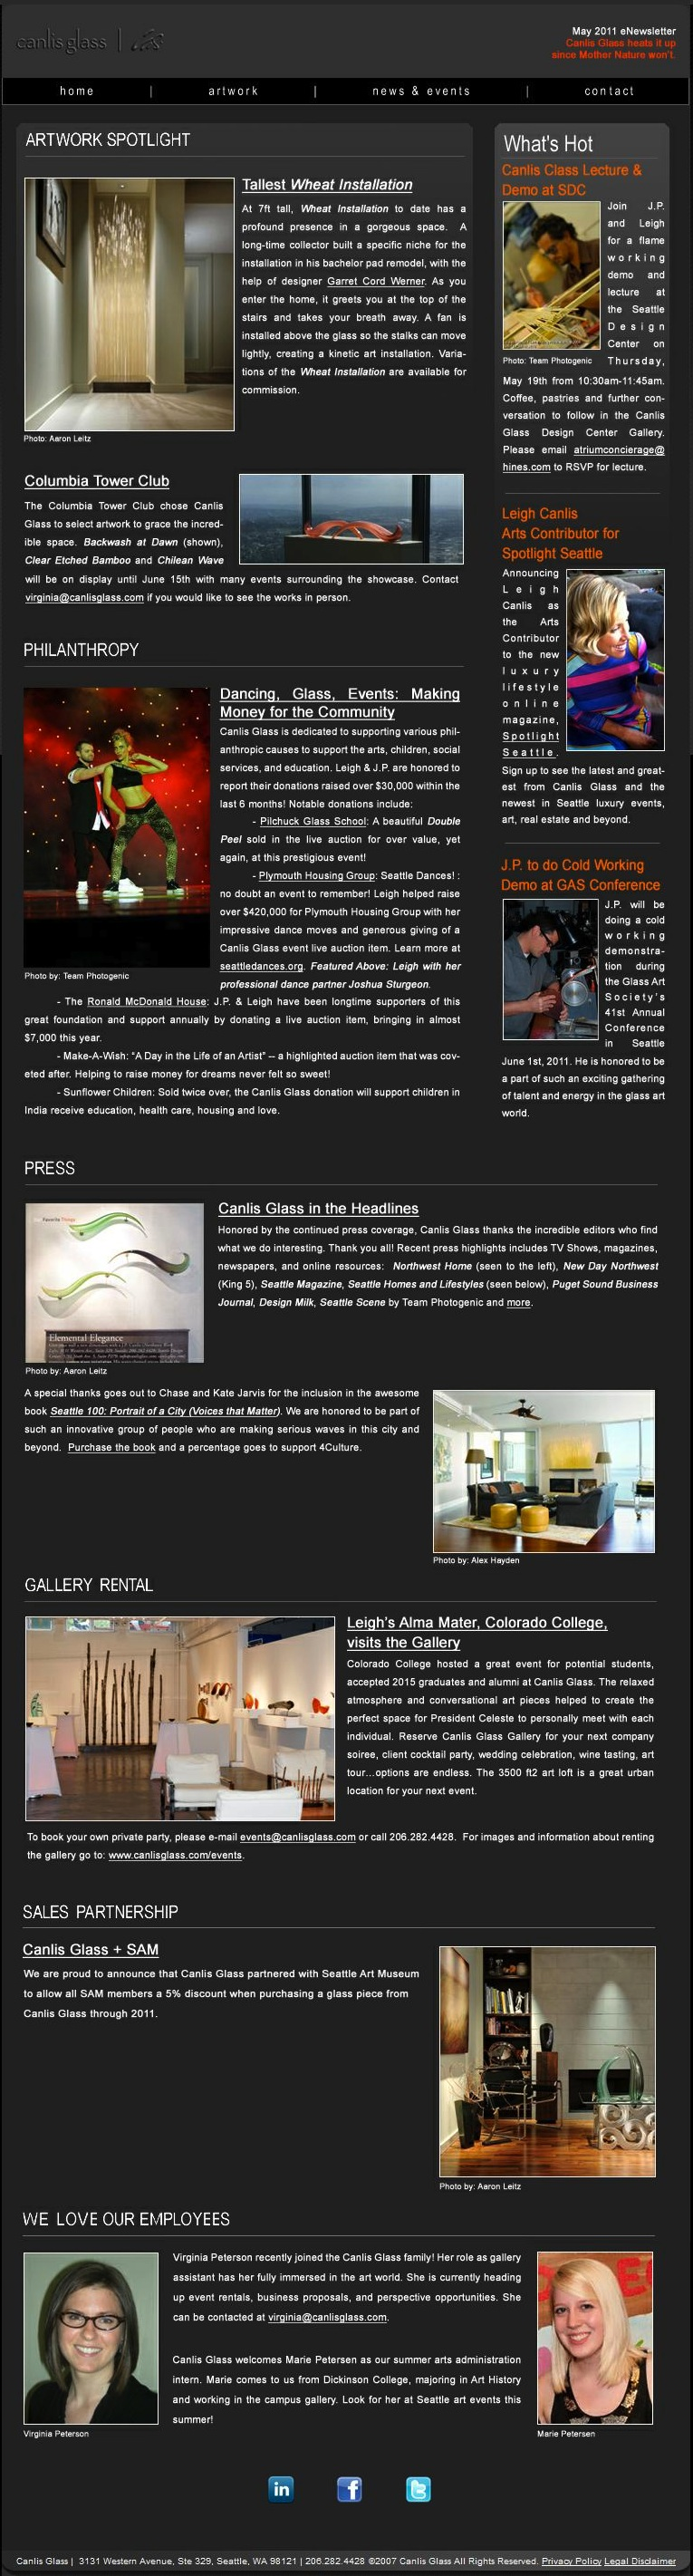 11-May2011Newsletter.jpeg